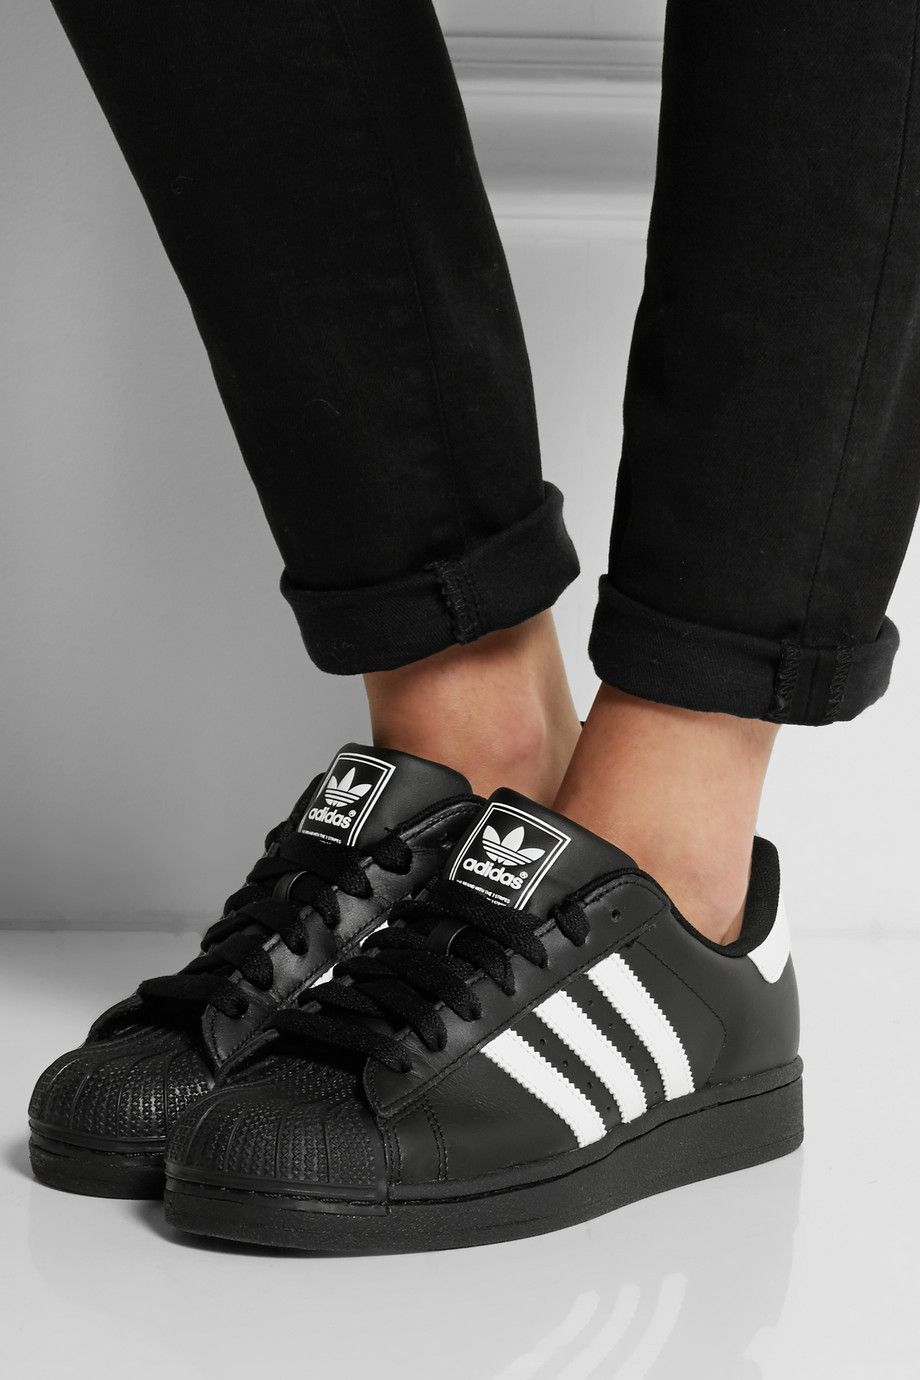 adidas superstar 2 outfits tumblr